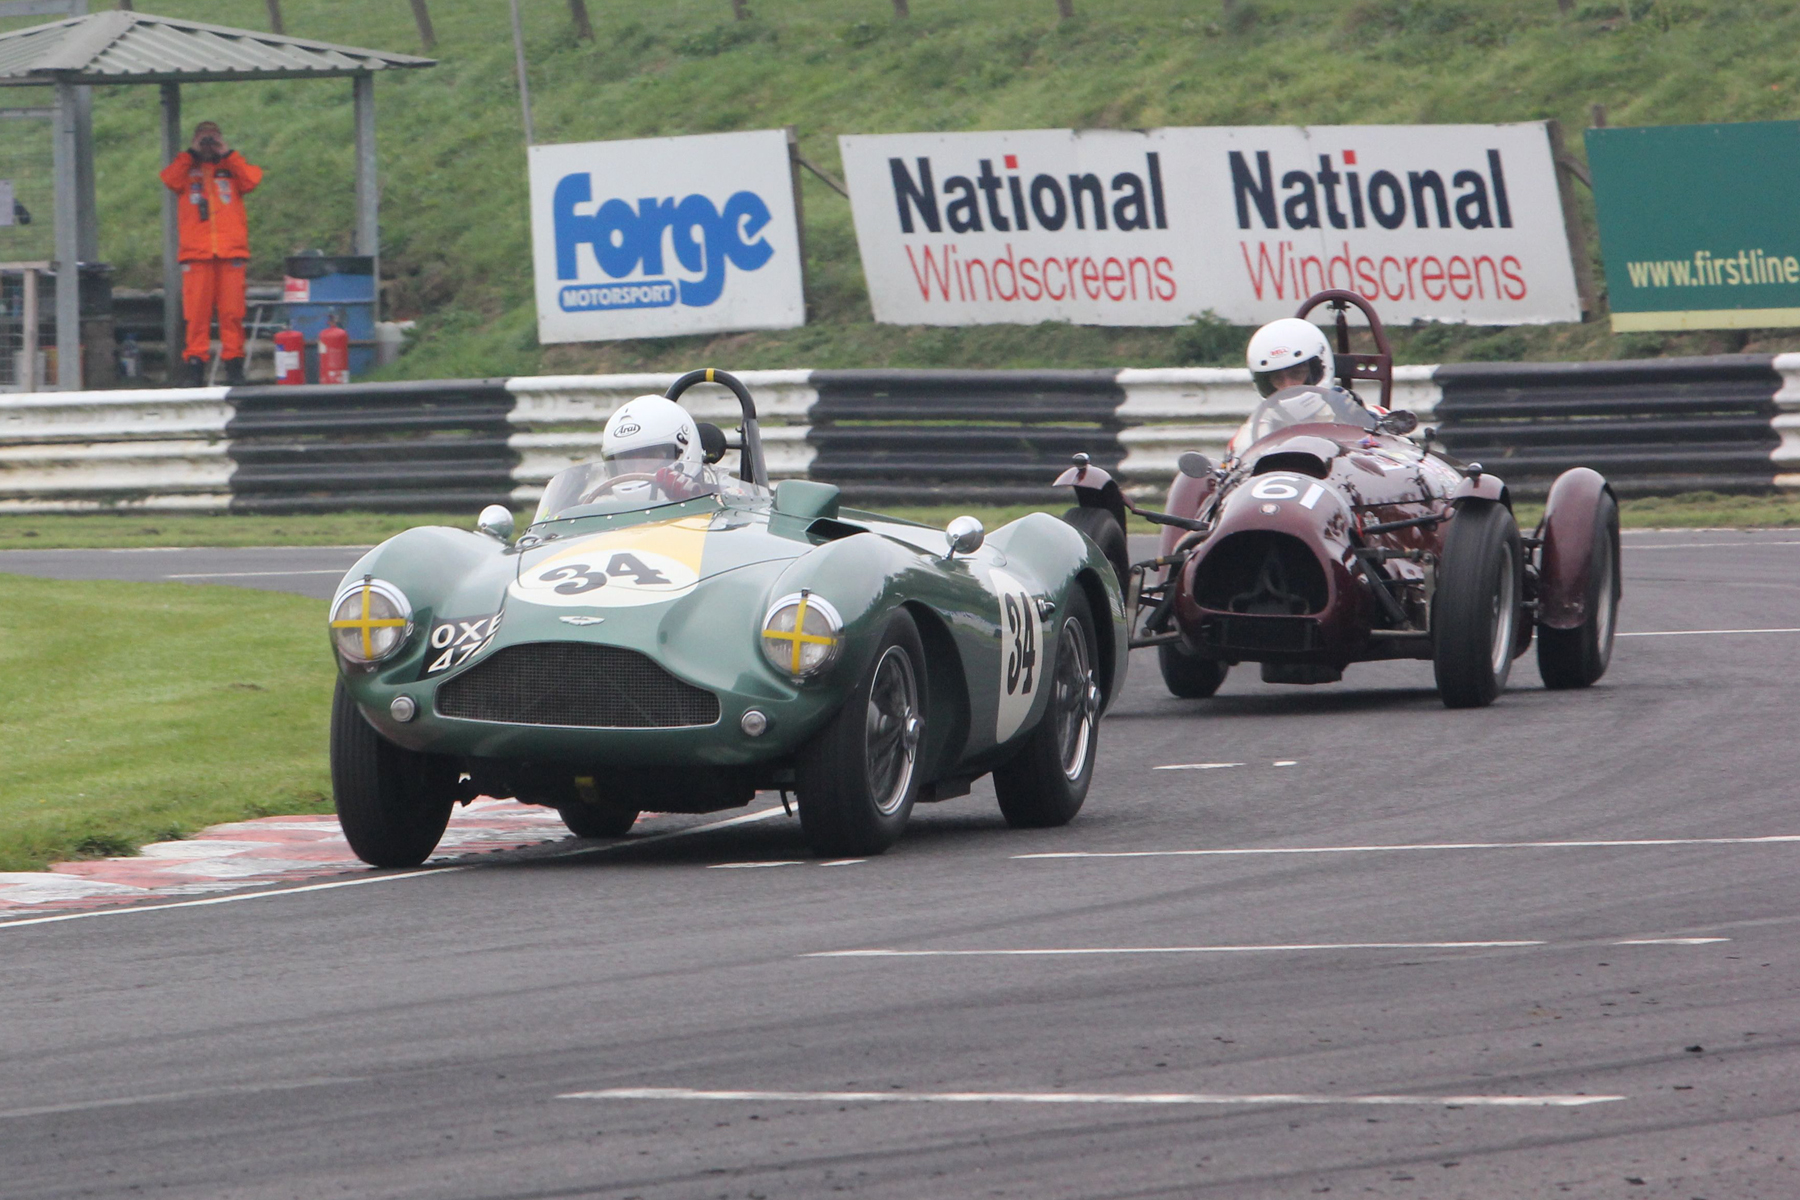 Steve Boultbee Brooks and John Ure. This photo was taken during qualifying (the marshal gives it away!) but it reflects exactly their closeness during the race                                  Photo - Pat Arculus, Tripos Media